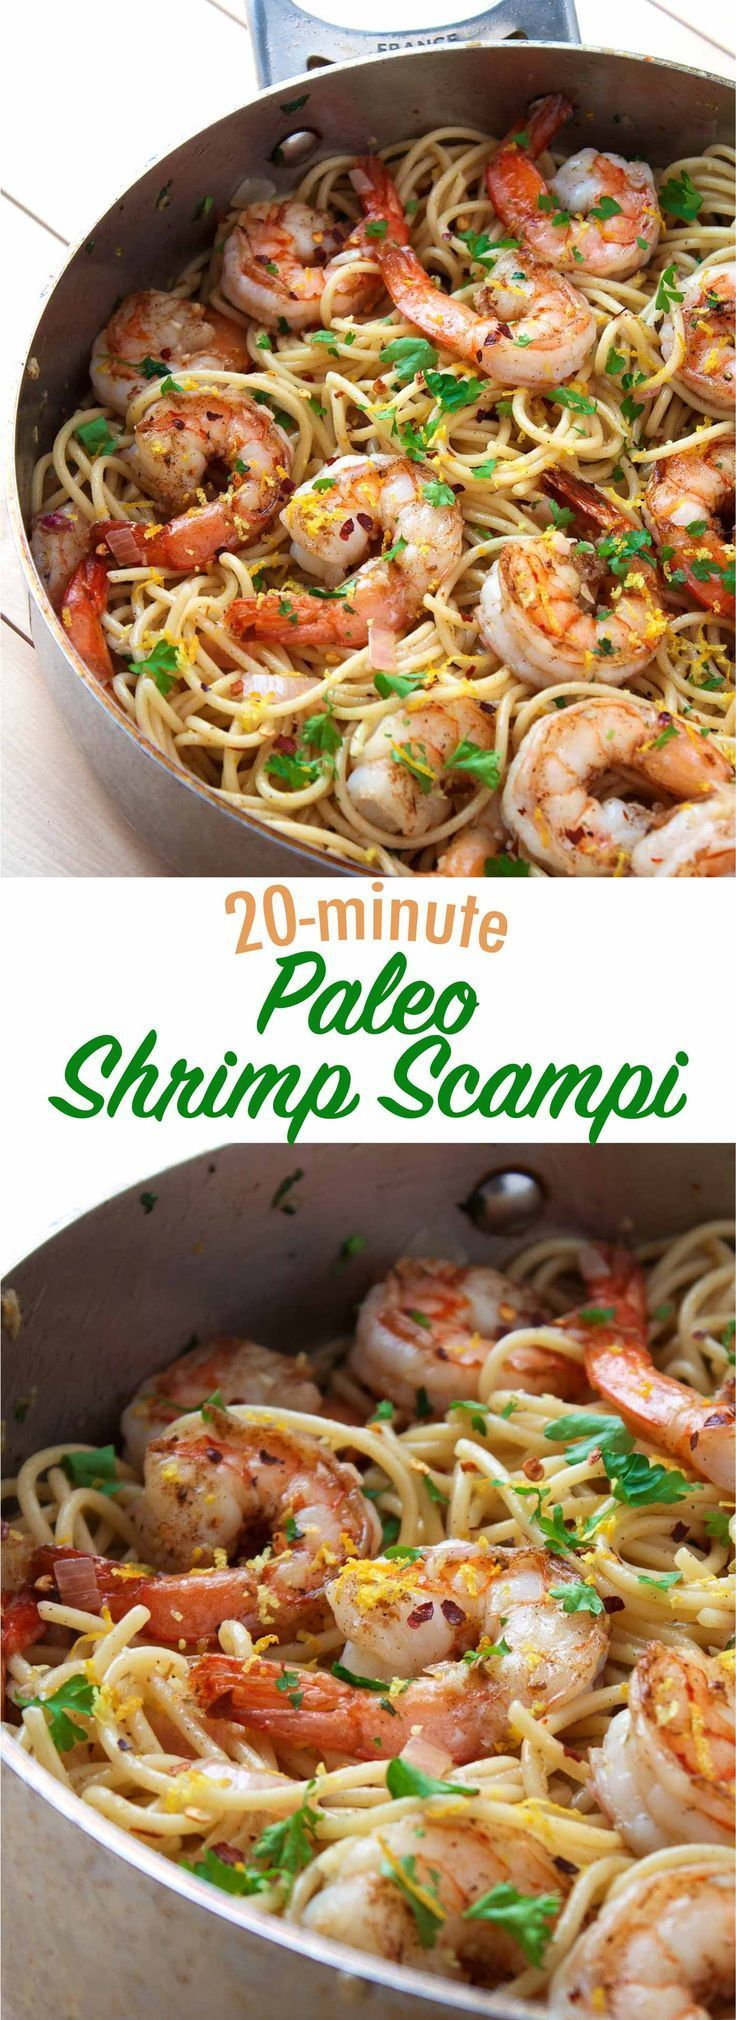 Perfect for a simple, quick weeknight meal and only takes 20 minutes to make! Th…